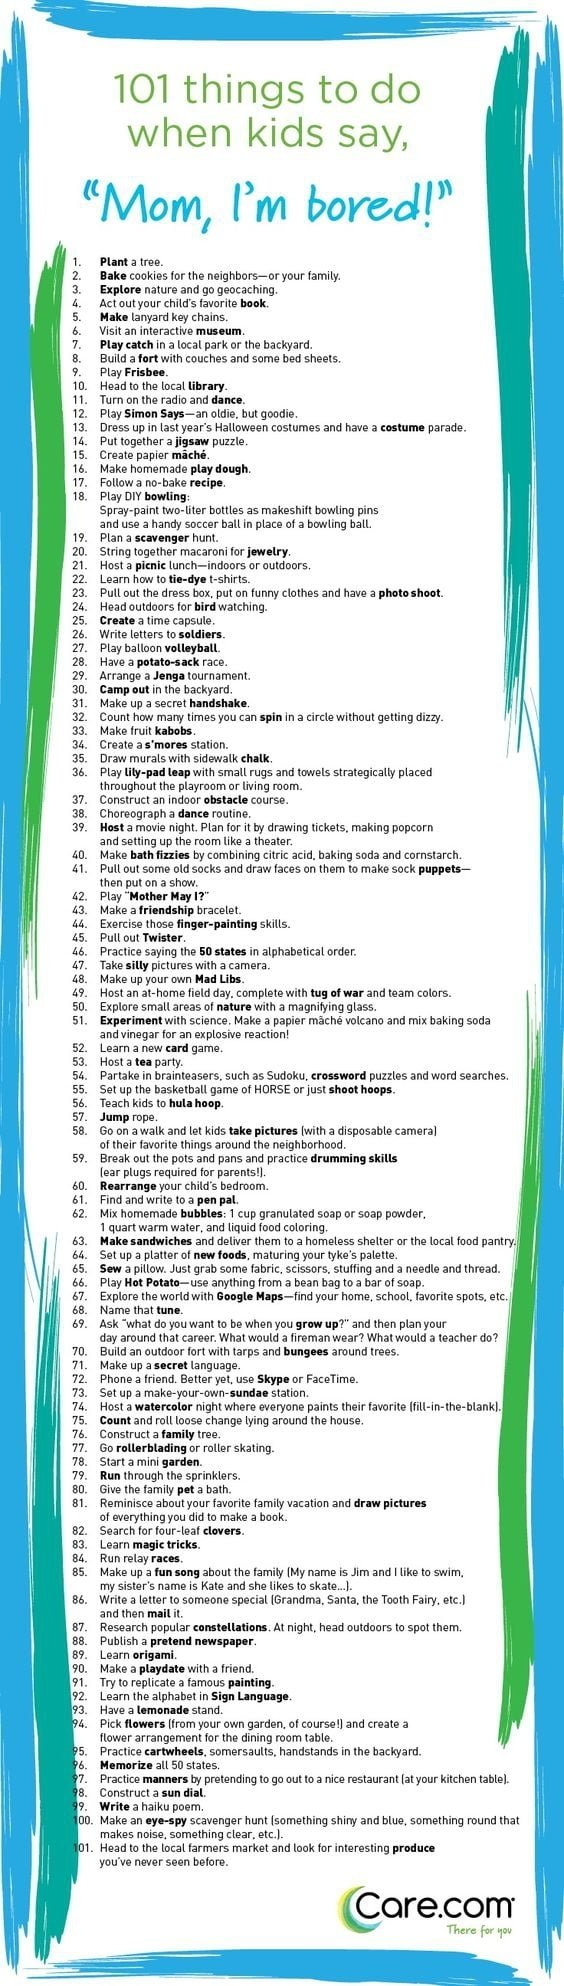 10 Elegant Ideas To Do When Bored 101 things to do when kids say im bored care 2020